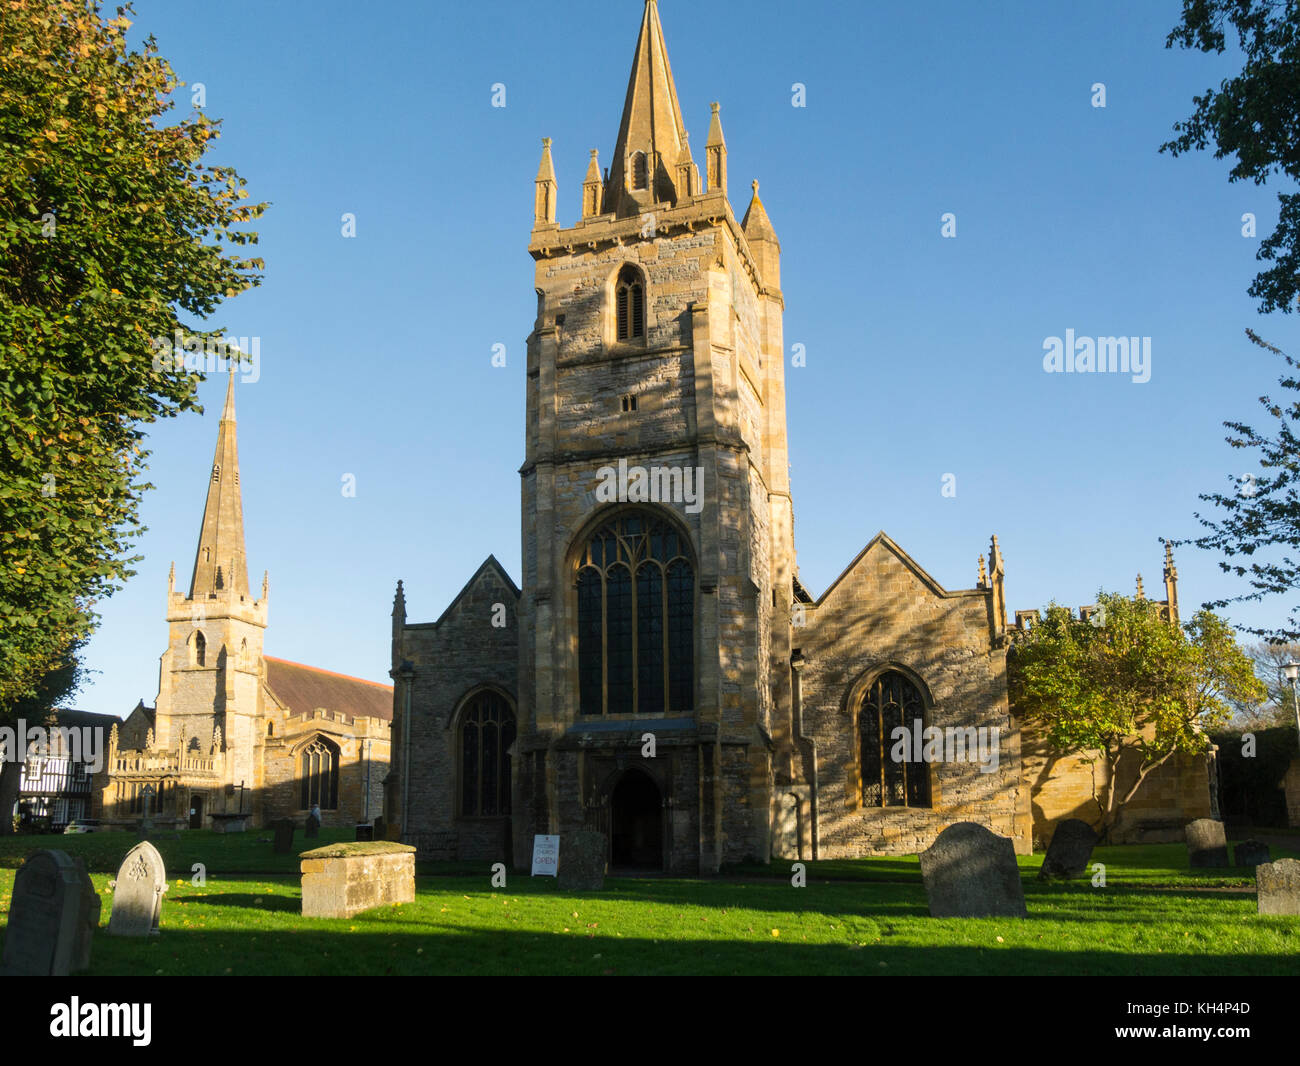 St Lawrence and All Saints Churches Evesham Abbey Worcestershire England UK, St Lawrence is no longer used All Saints - Stock Image